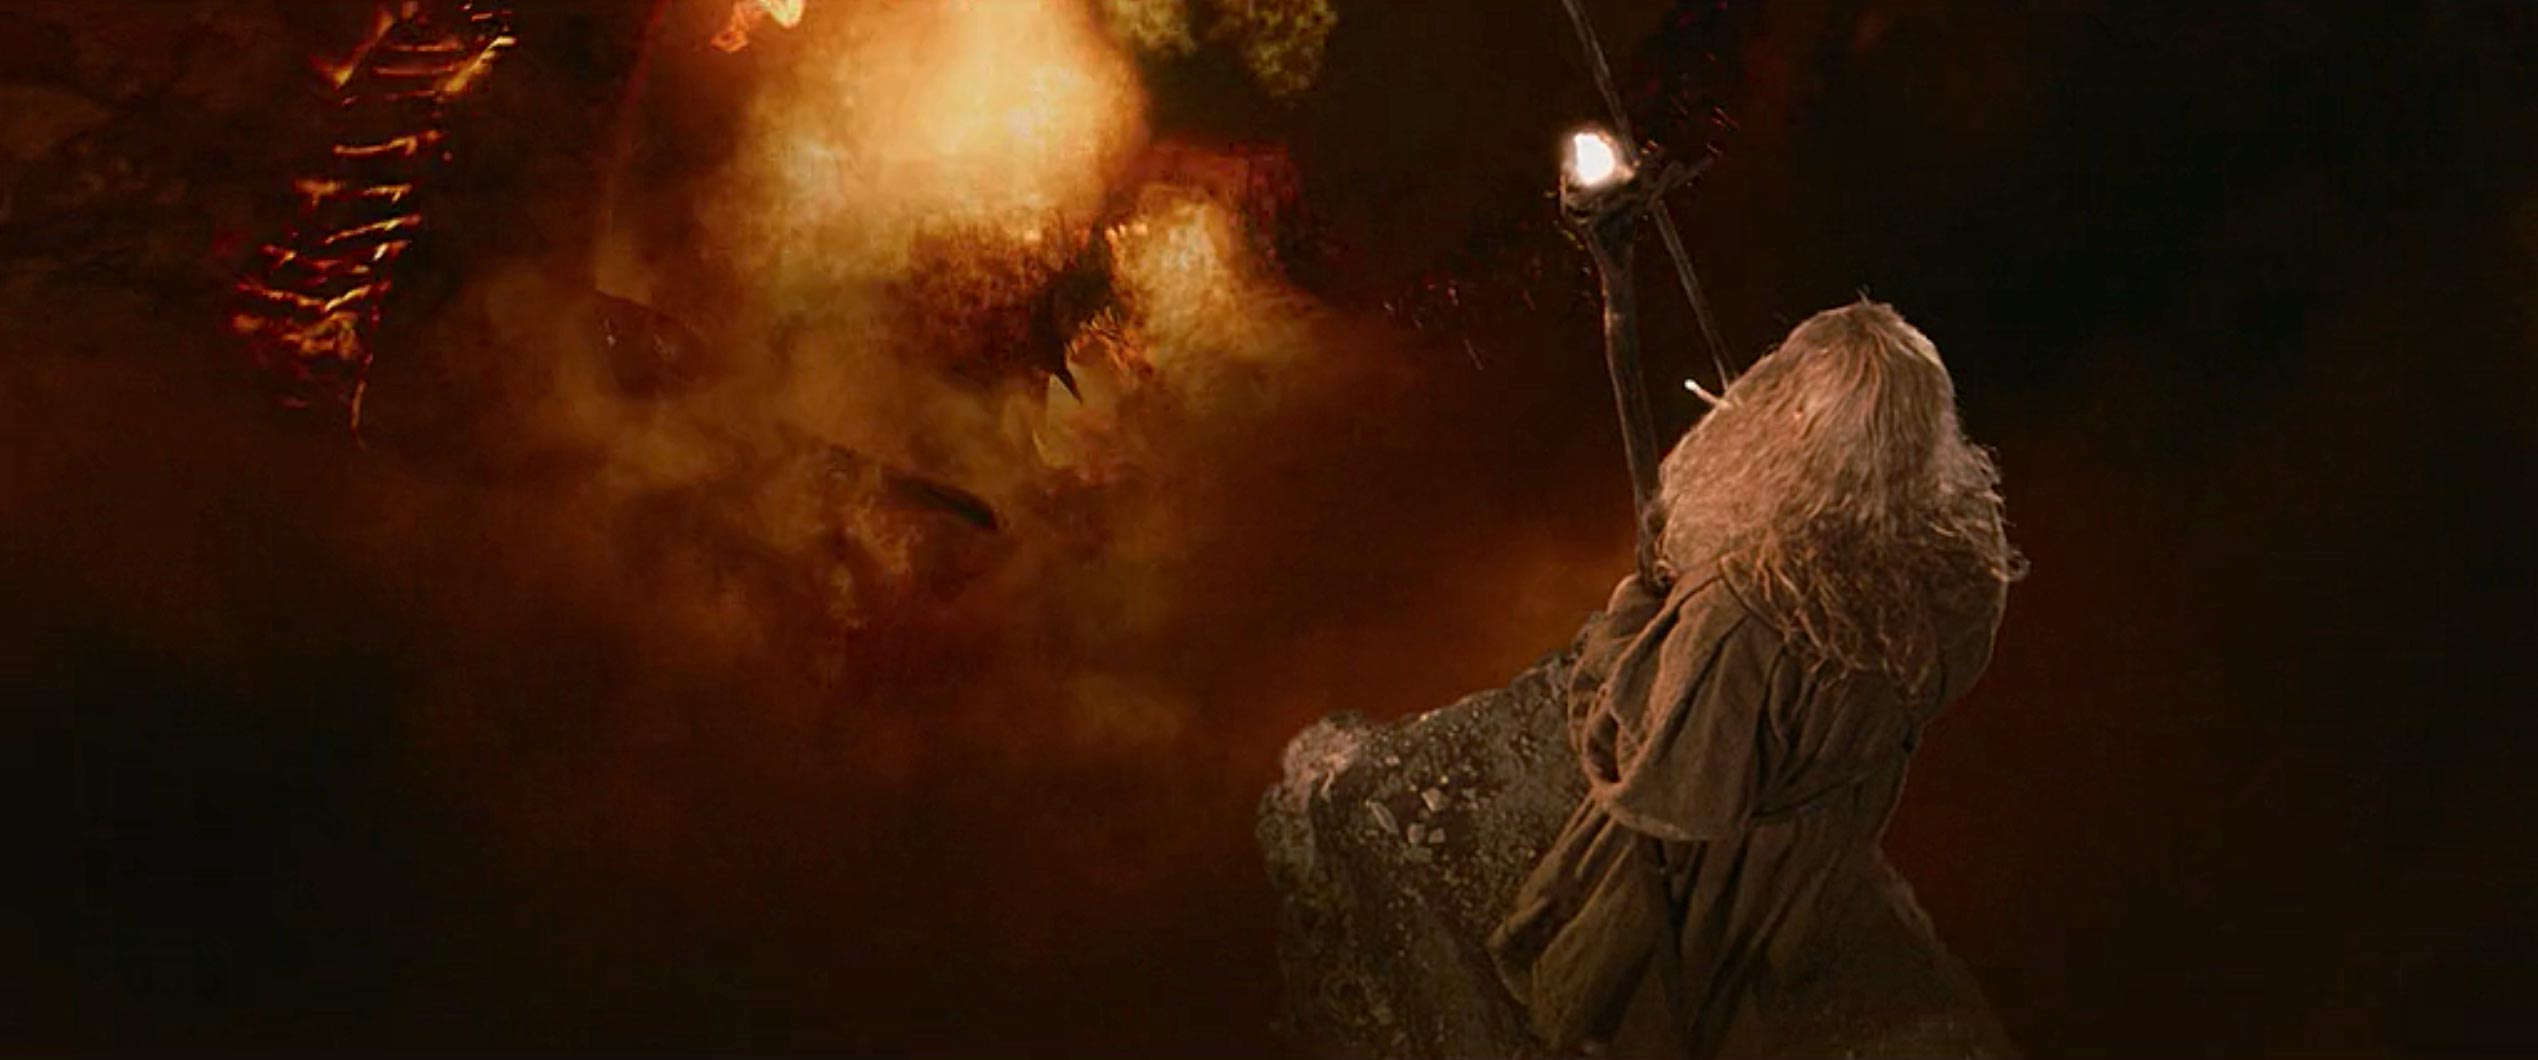 The Lord of the Rings: The Motion Picture Trilogy on 4k Blu-ray